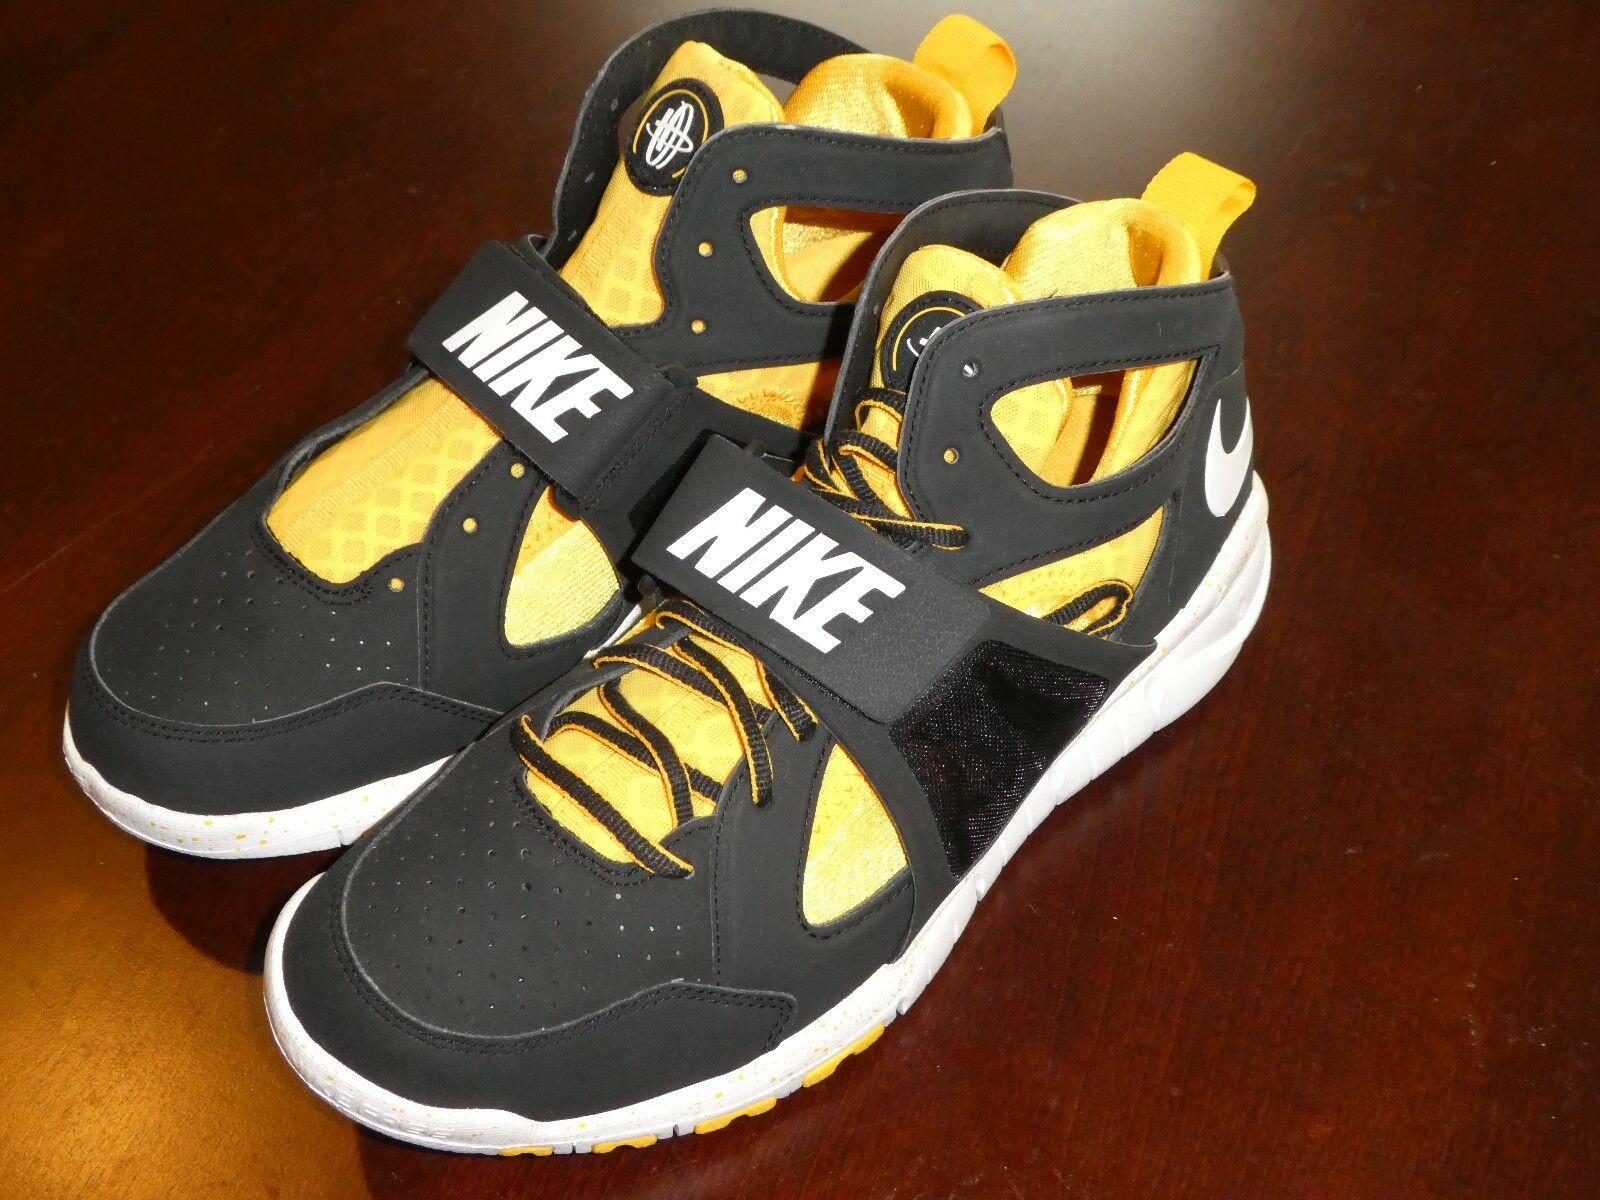 Nike Huarache Free Shield DD shoes Uomo new 540815 017 Pittsburgh Steelers